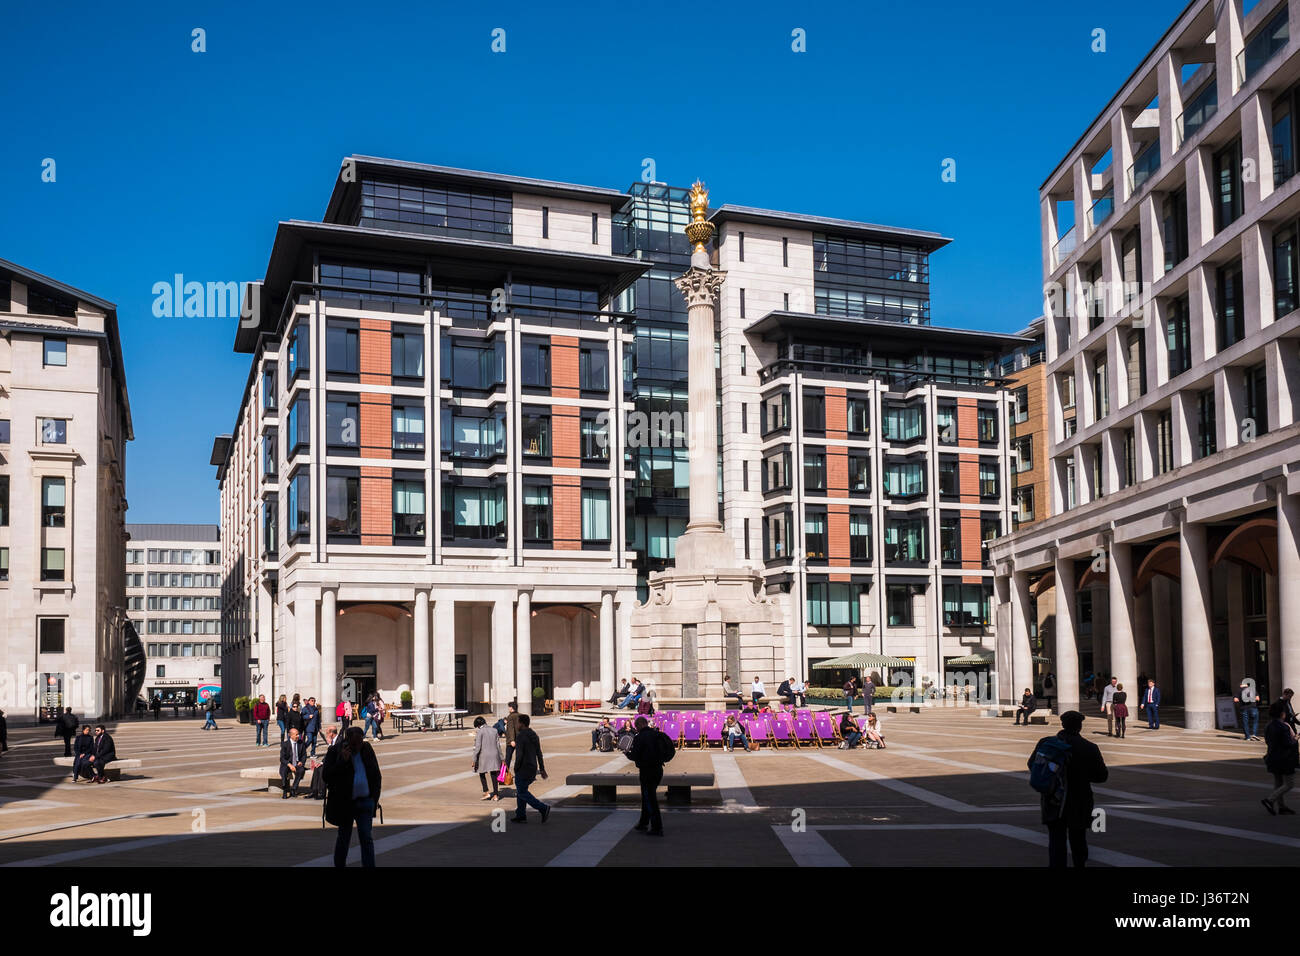 Paternoster Square is an urban development, next to St Paul's Cathedral in the City of London, England, U.K. - Stock Image